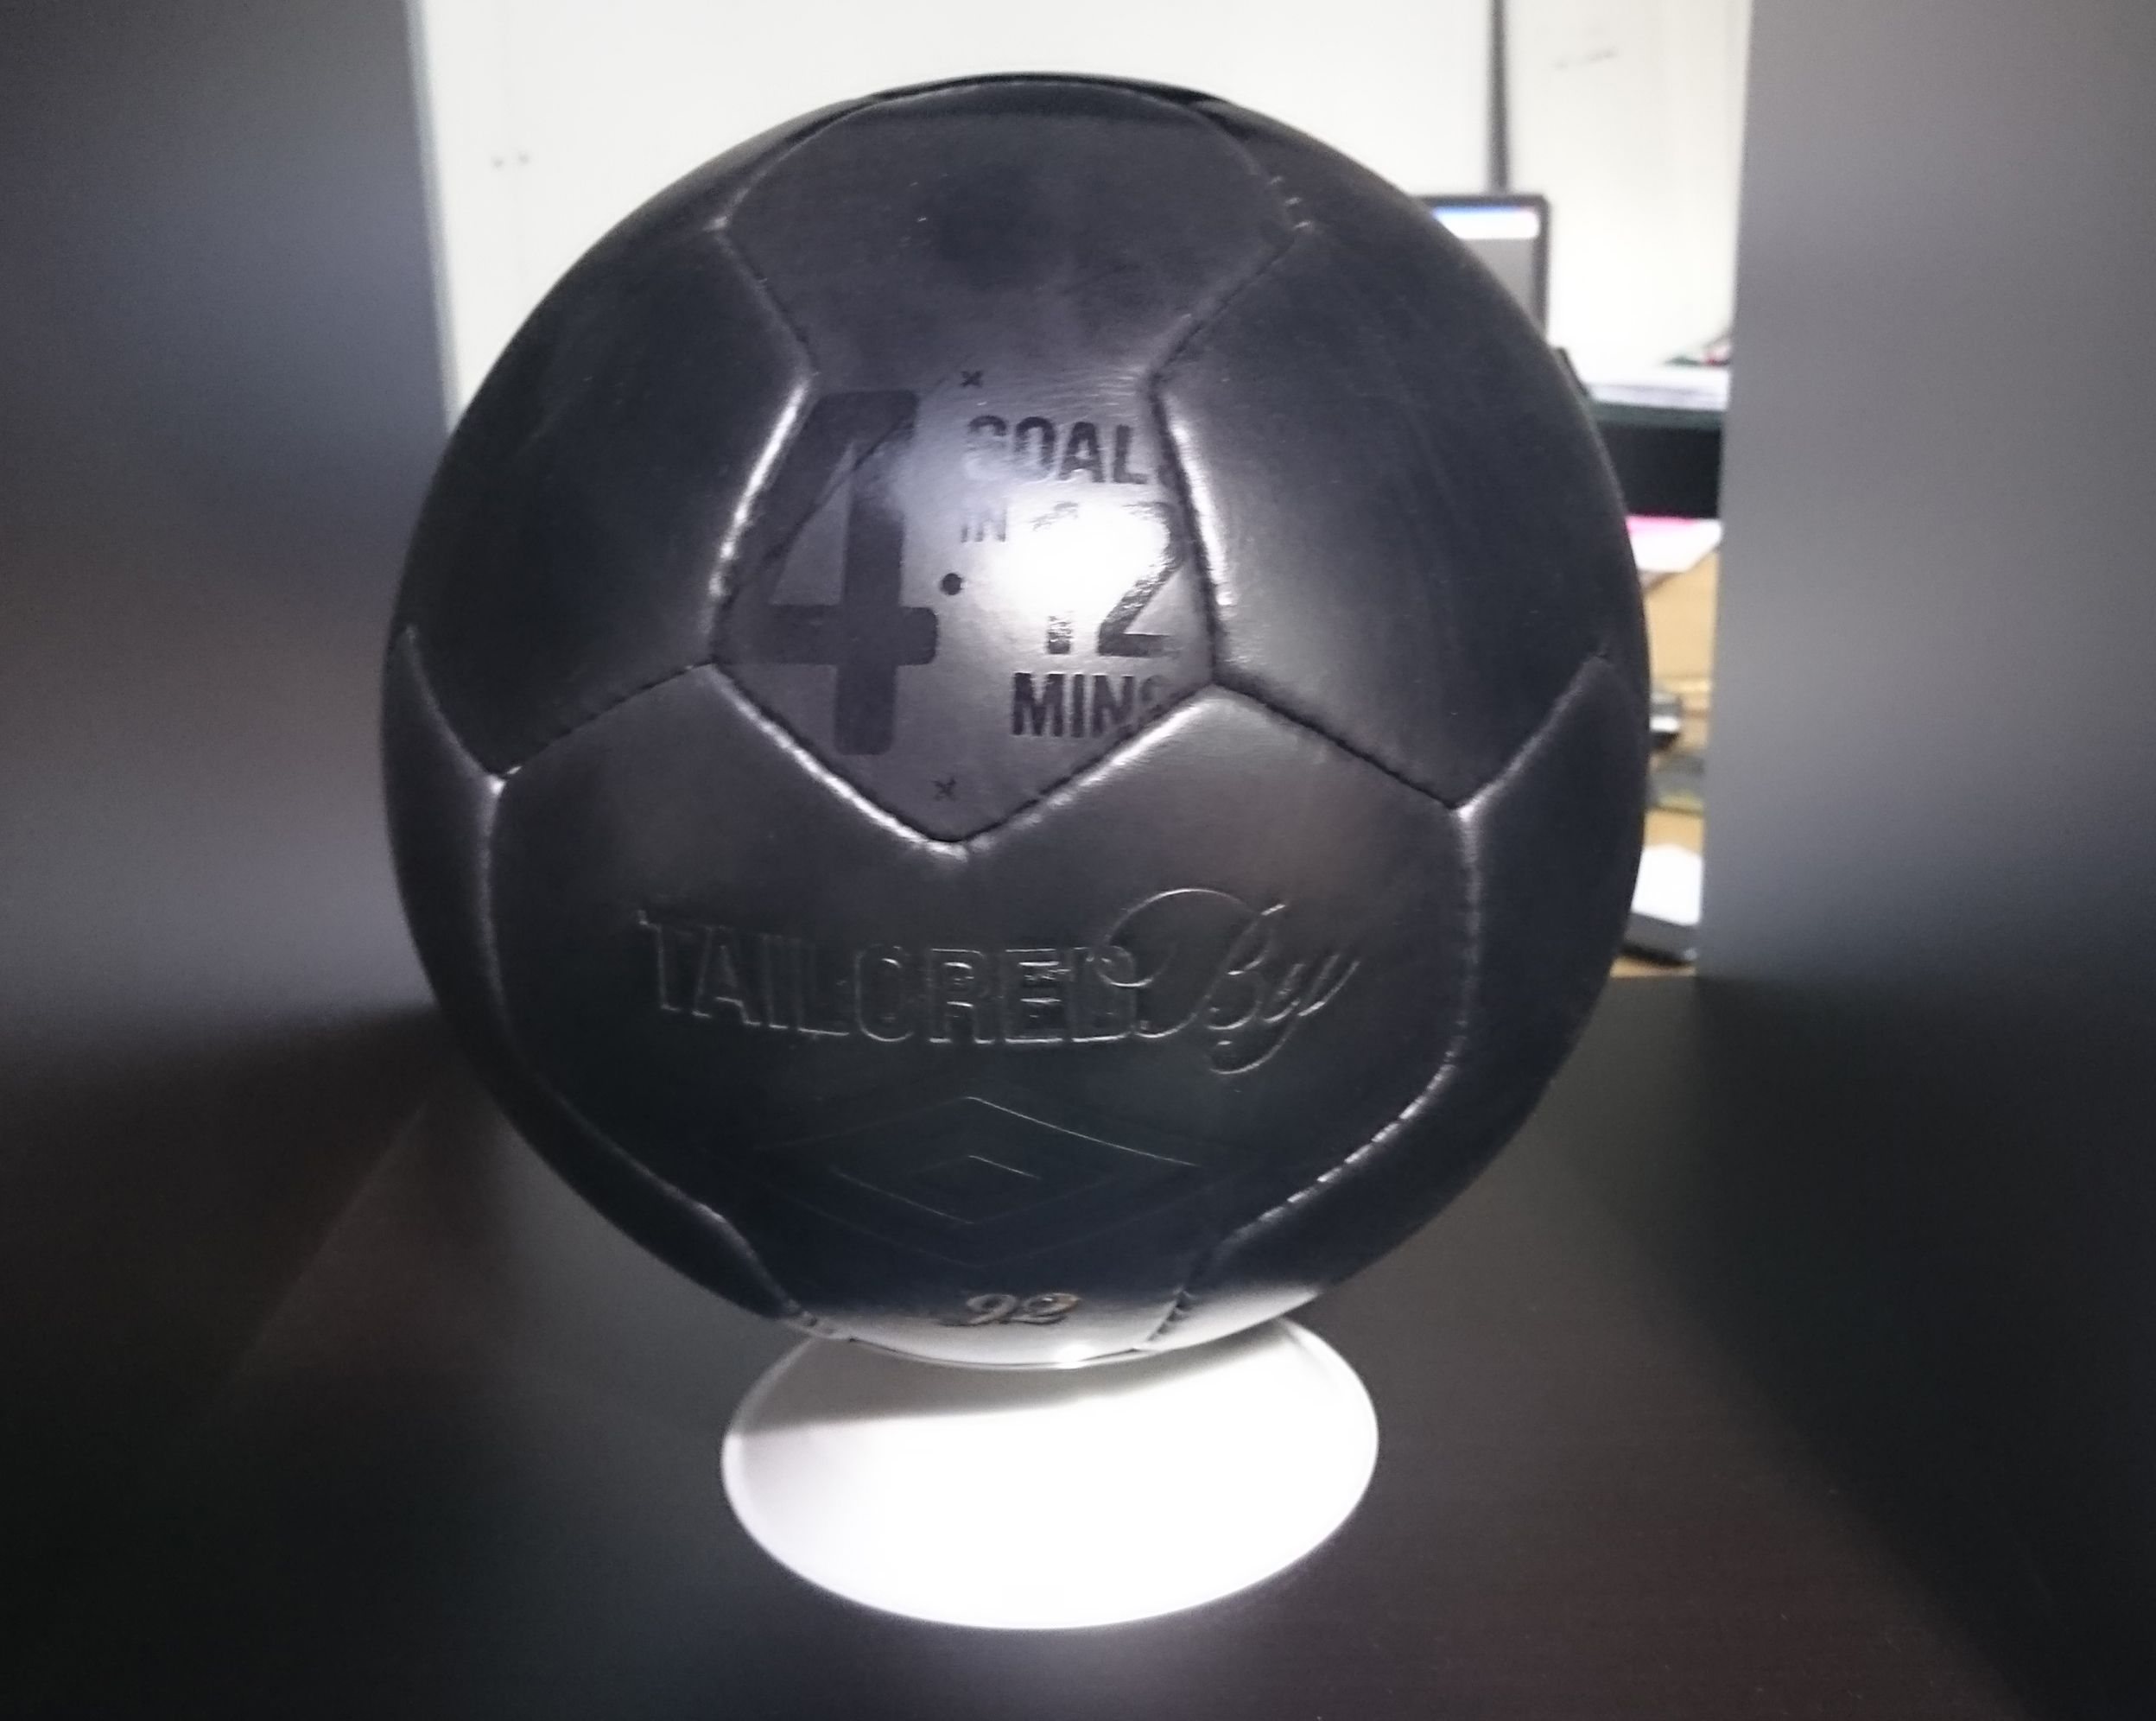 Super Limited Edition Umbro Speciale Ball - celebrating 20 years of ... 1fcd862c6